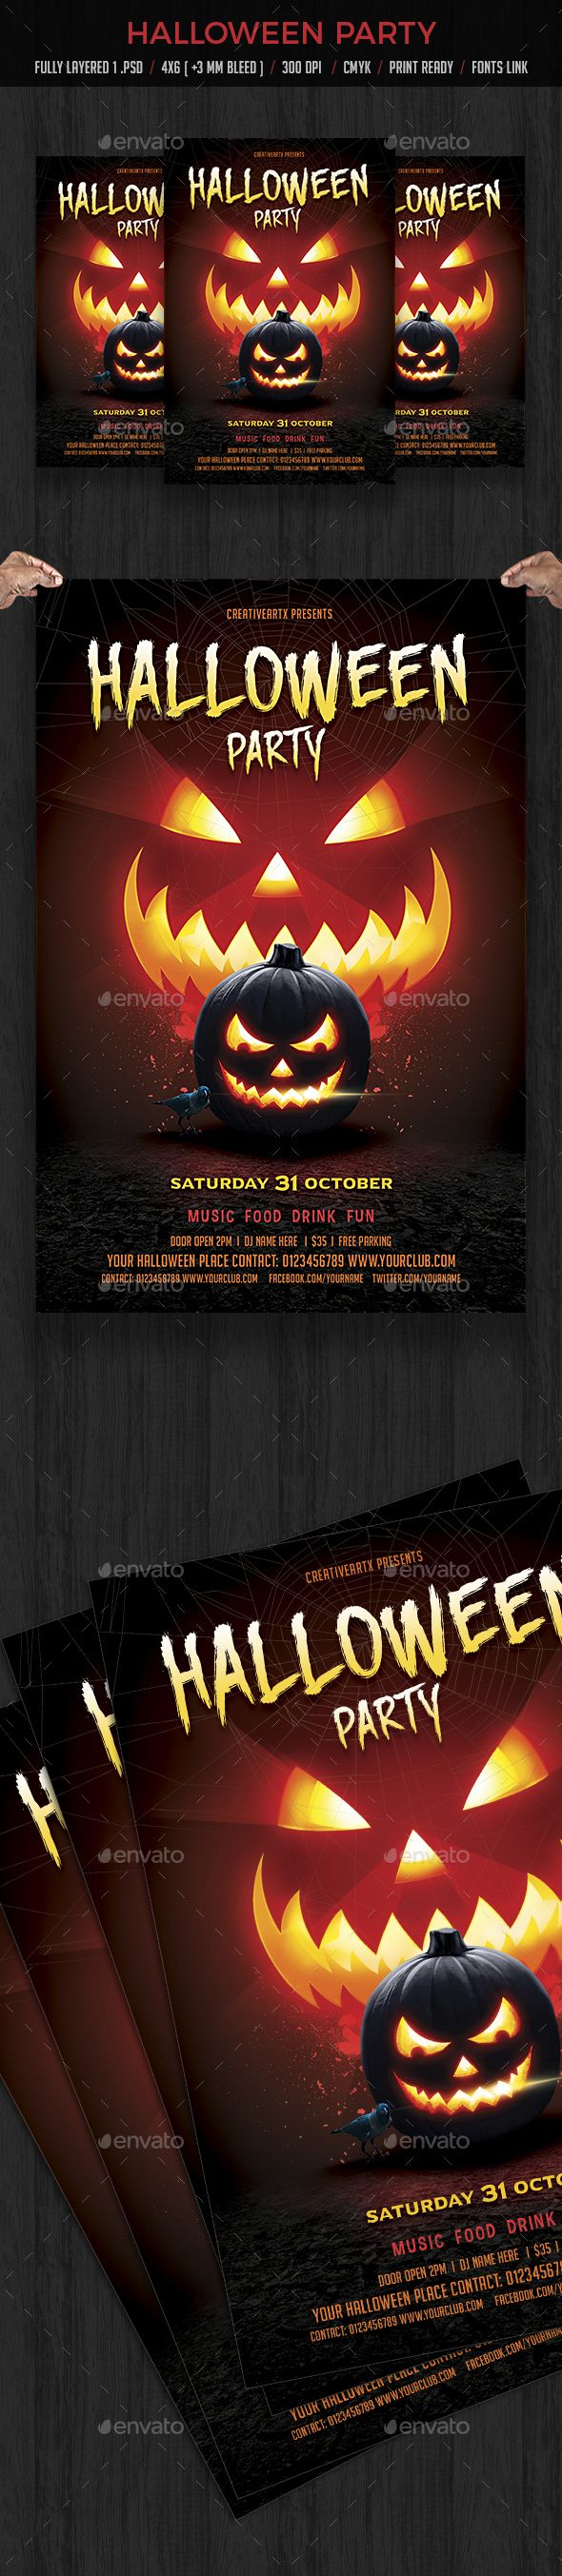 halloween party flyer events flyers - Halloween Music For Parties